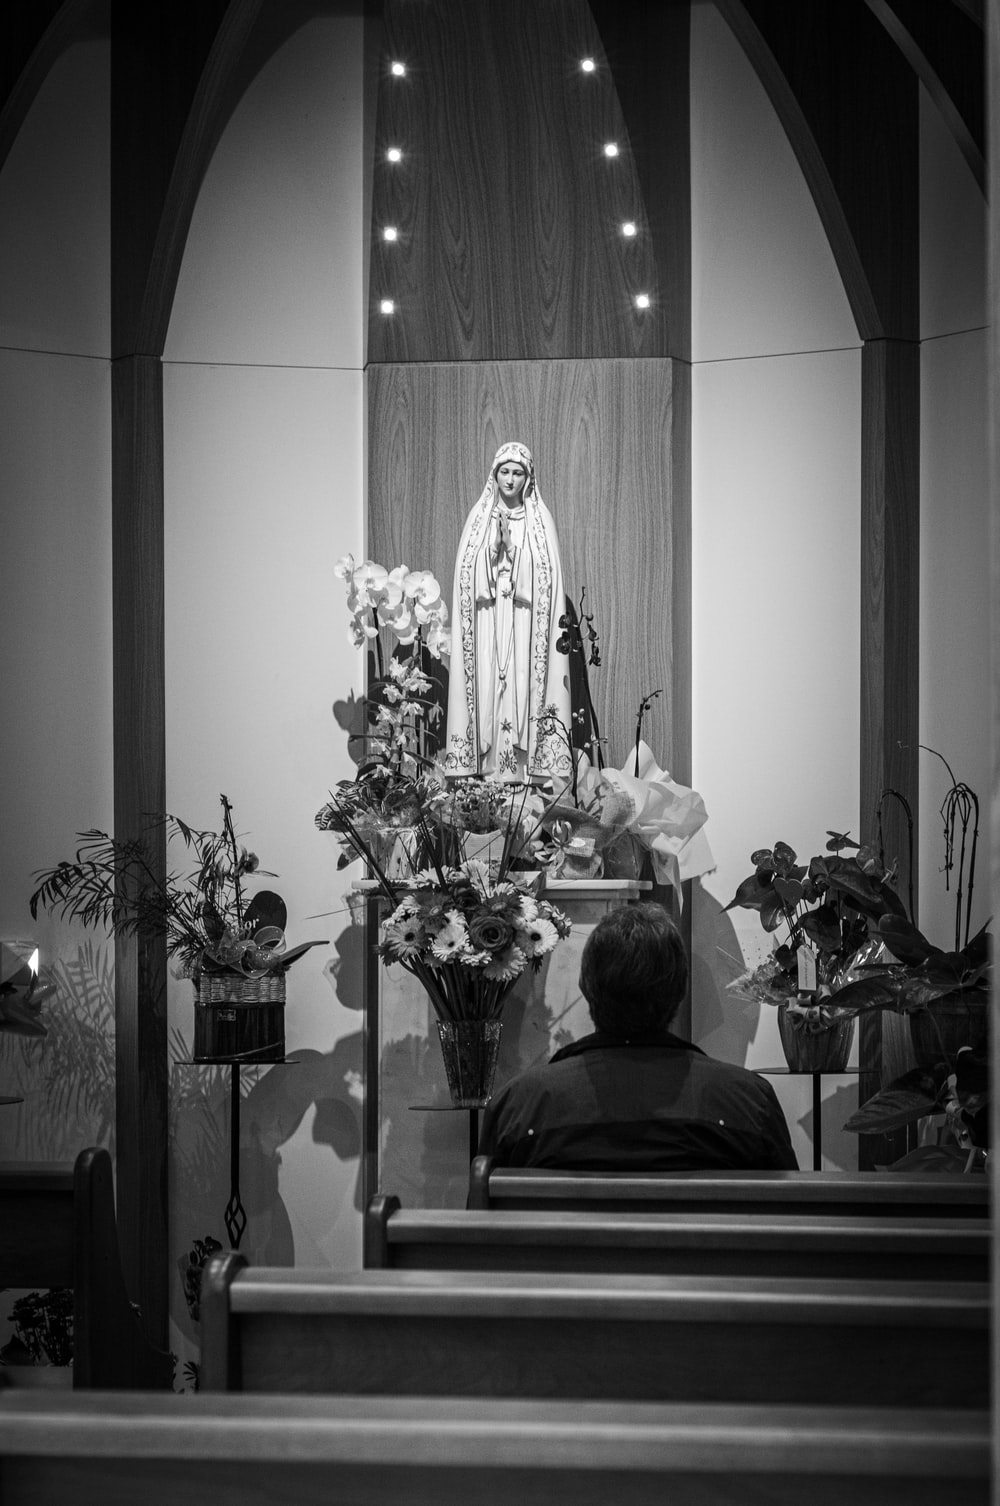 grayscale photography of person sitting in front of religious figure